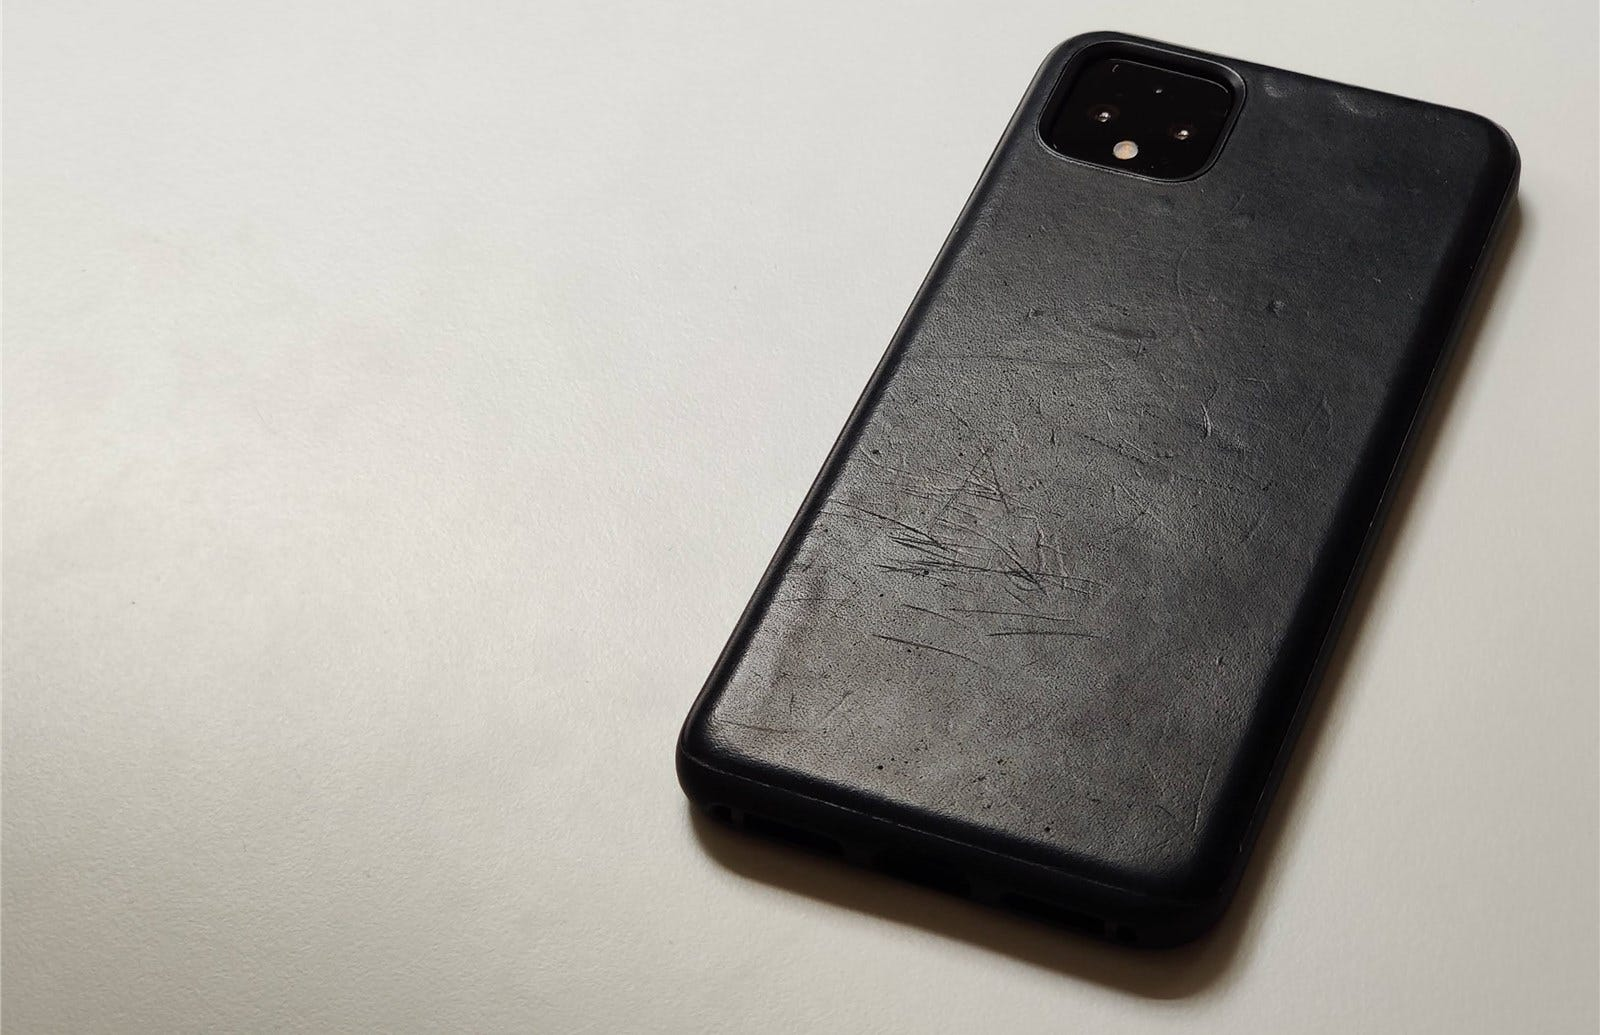 The Pixel 4 XL with the Nomad Rugged Case in Black